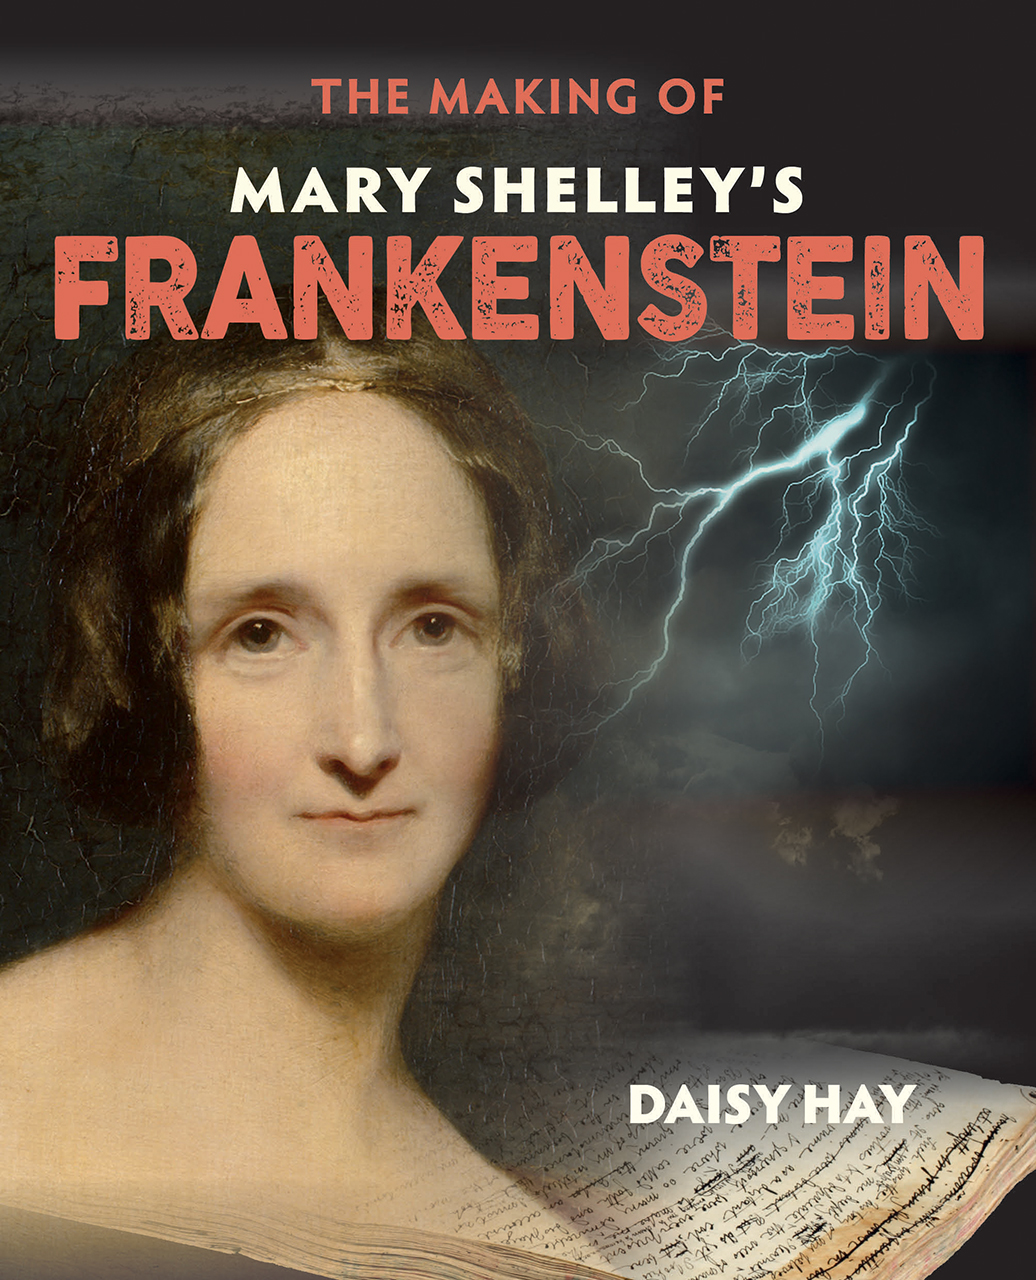 The Making of Mary Shelley's Frankenstein